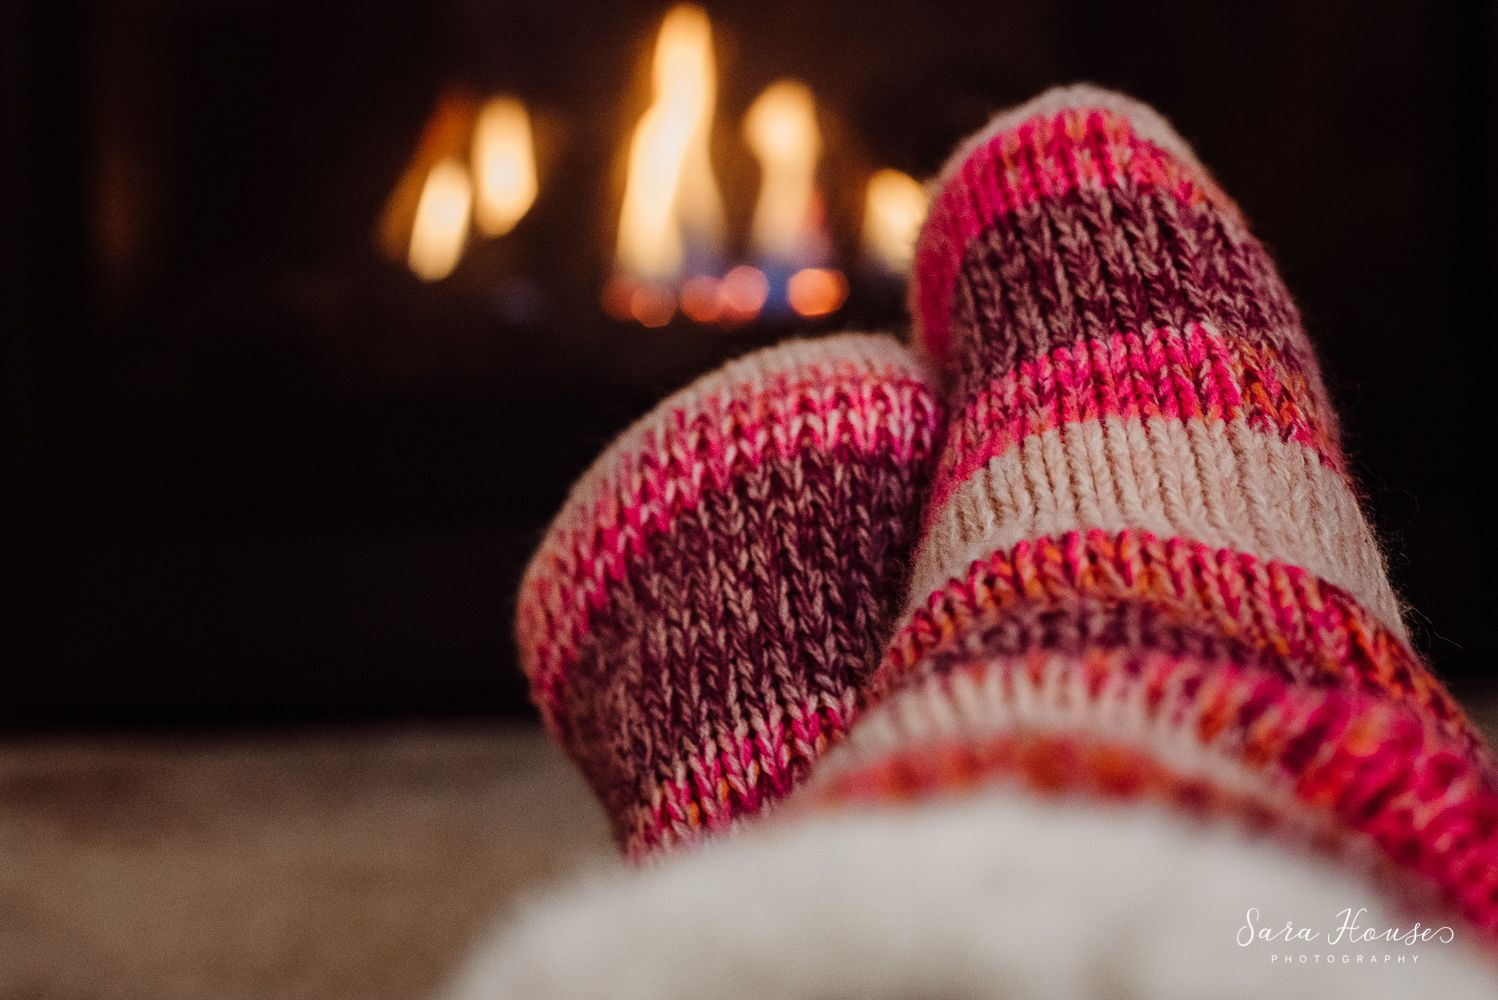 Project 365 photo of pink socks in front of fireplace